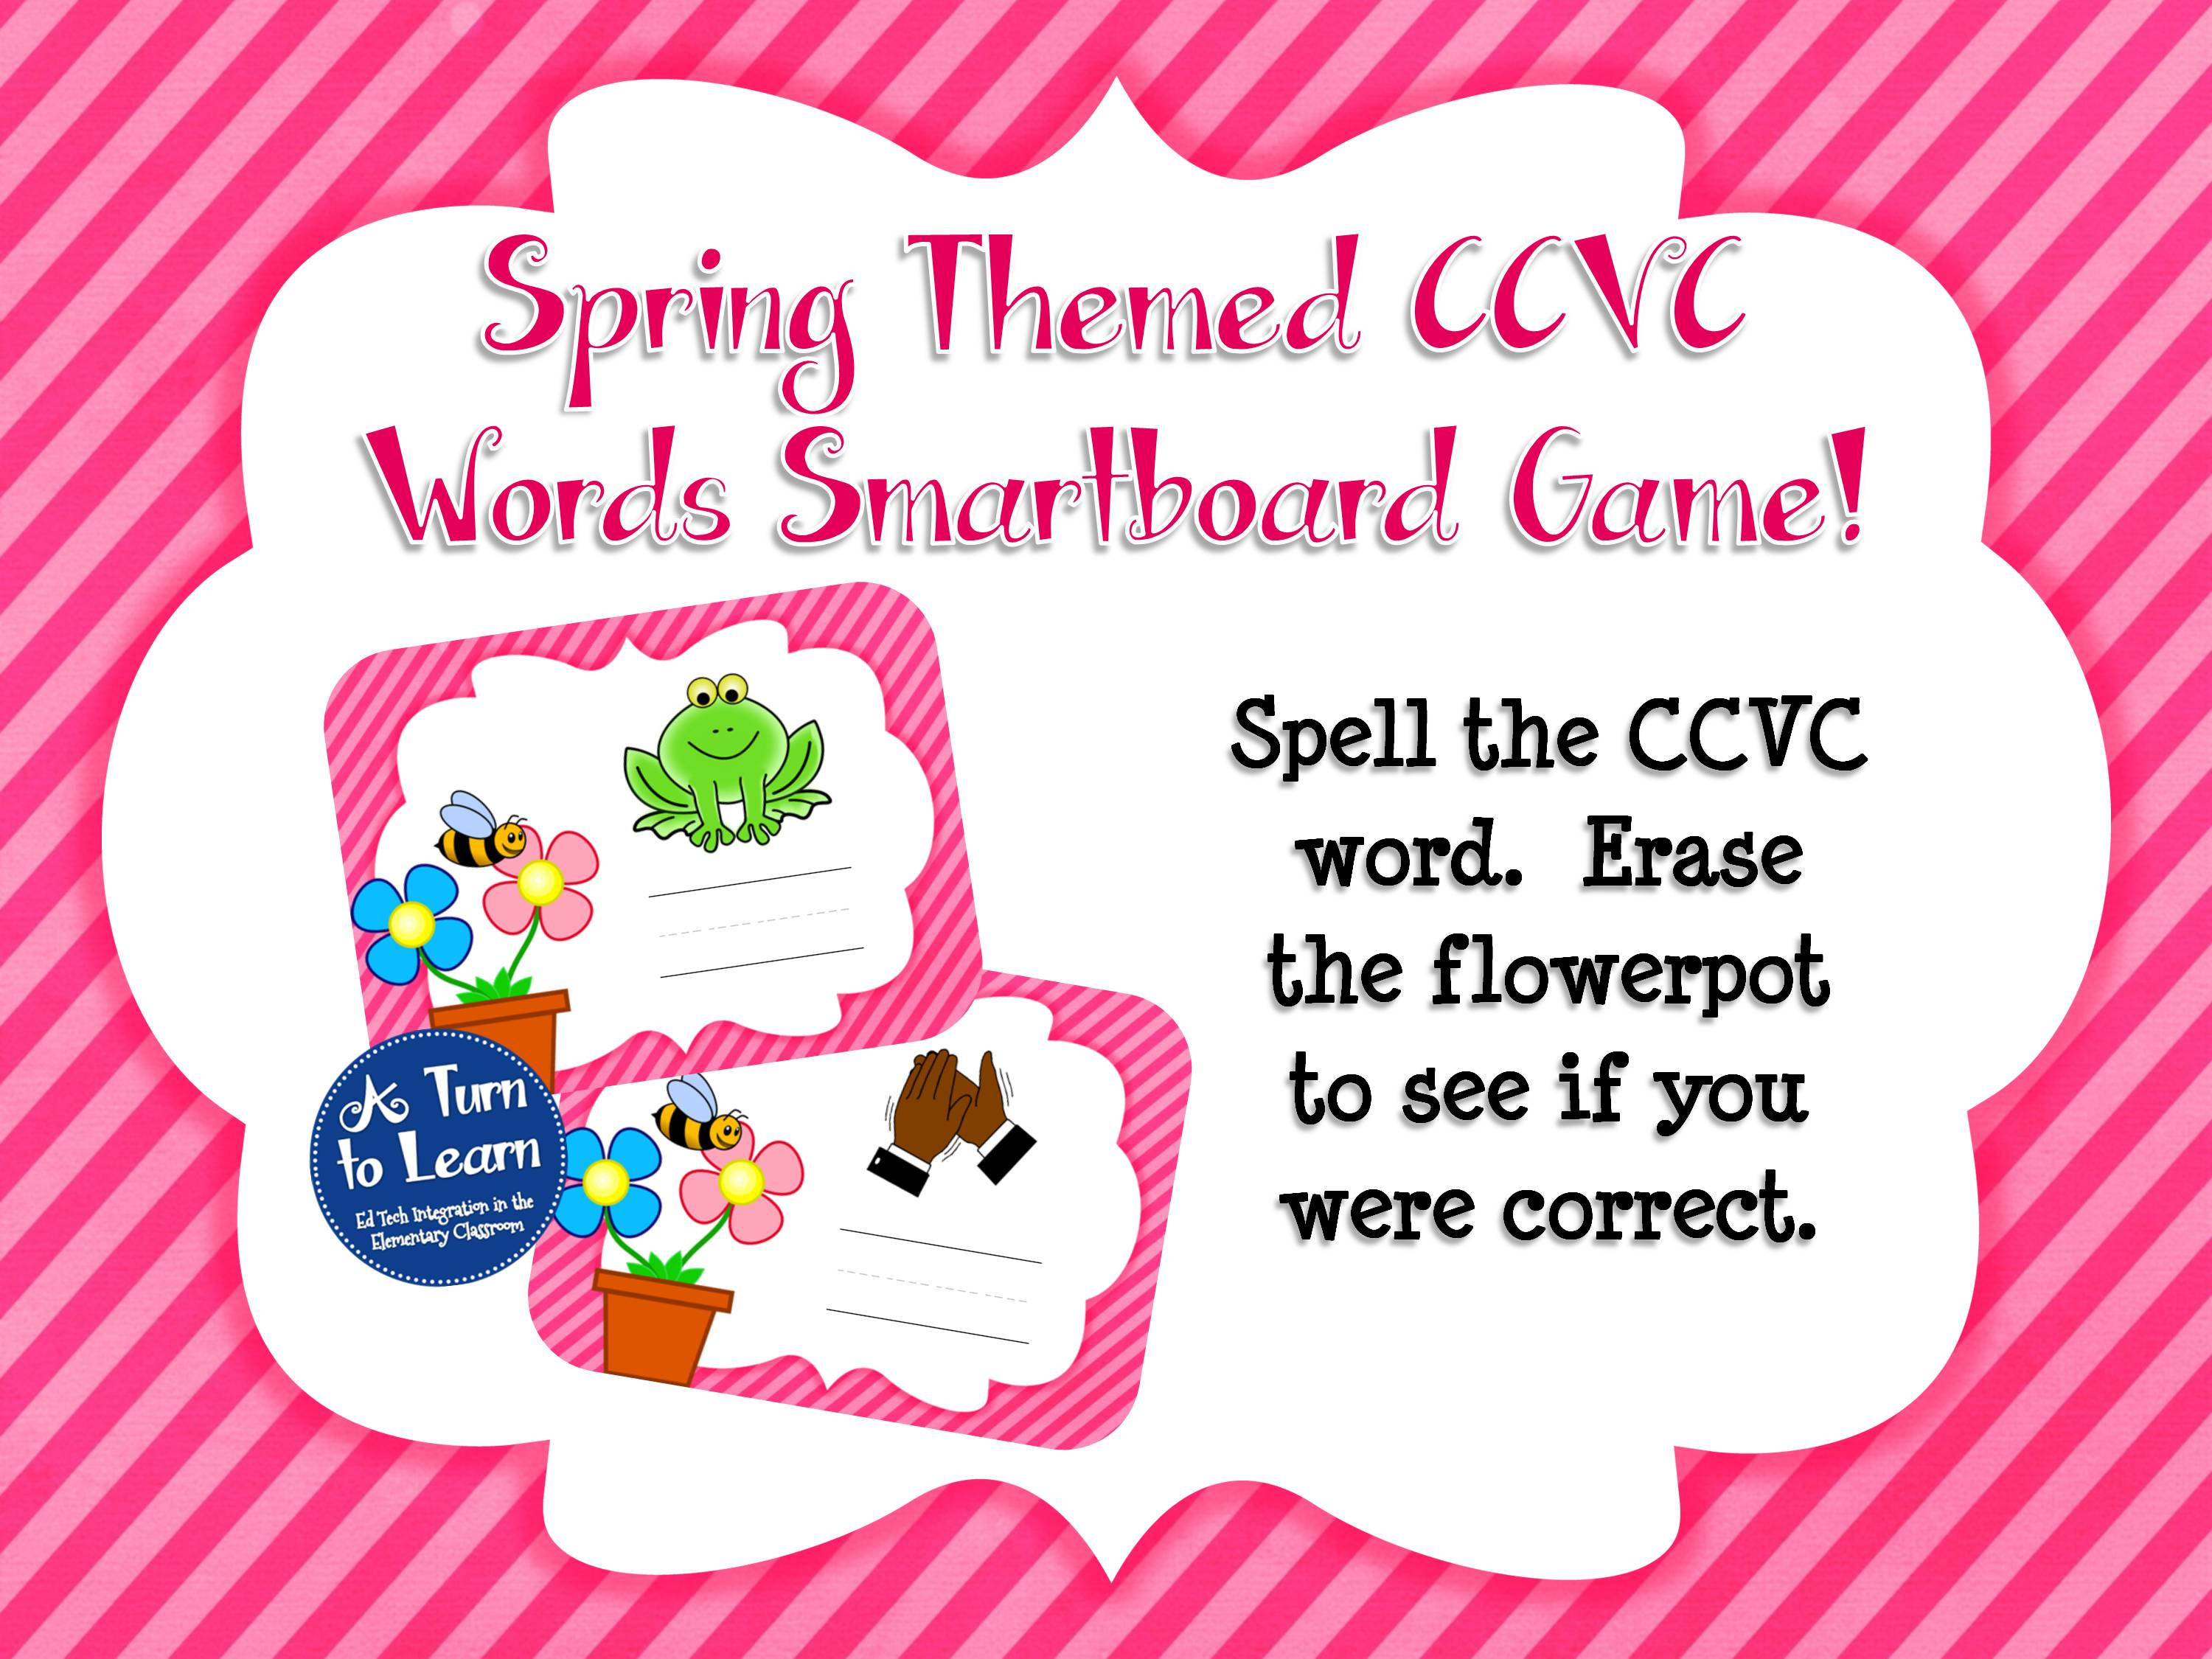 Consonant Blend Board Game: Say and Spell It